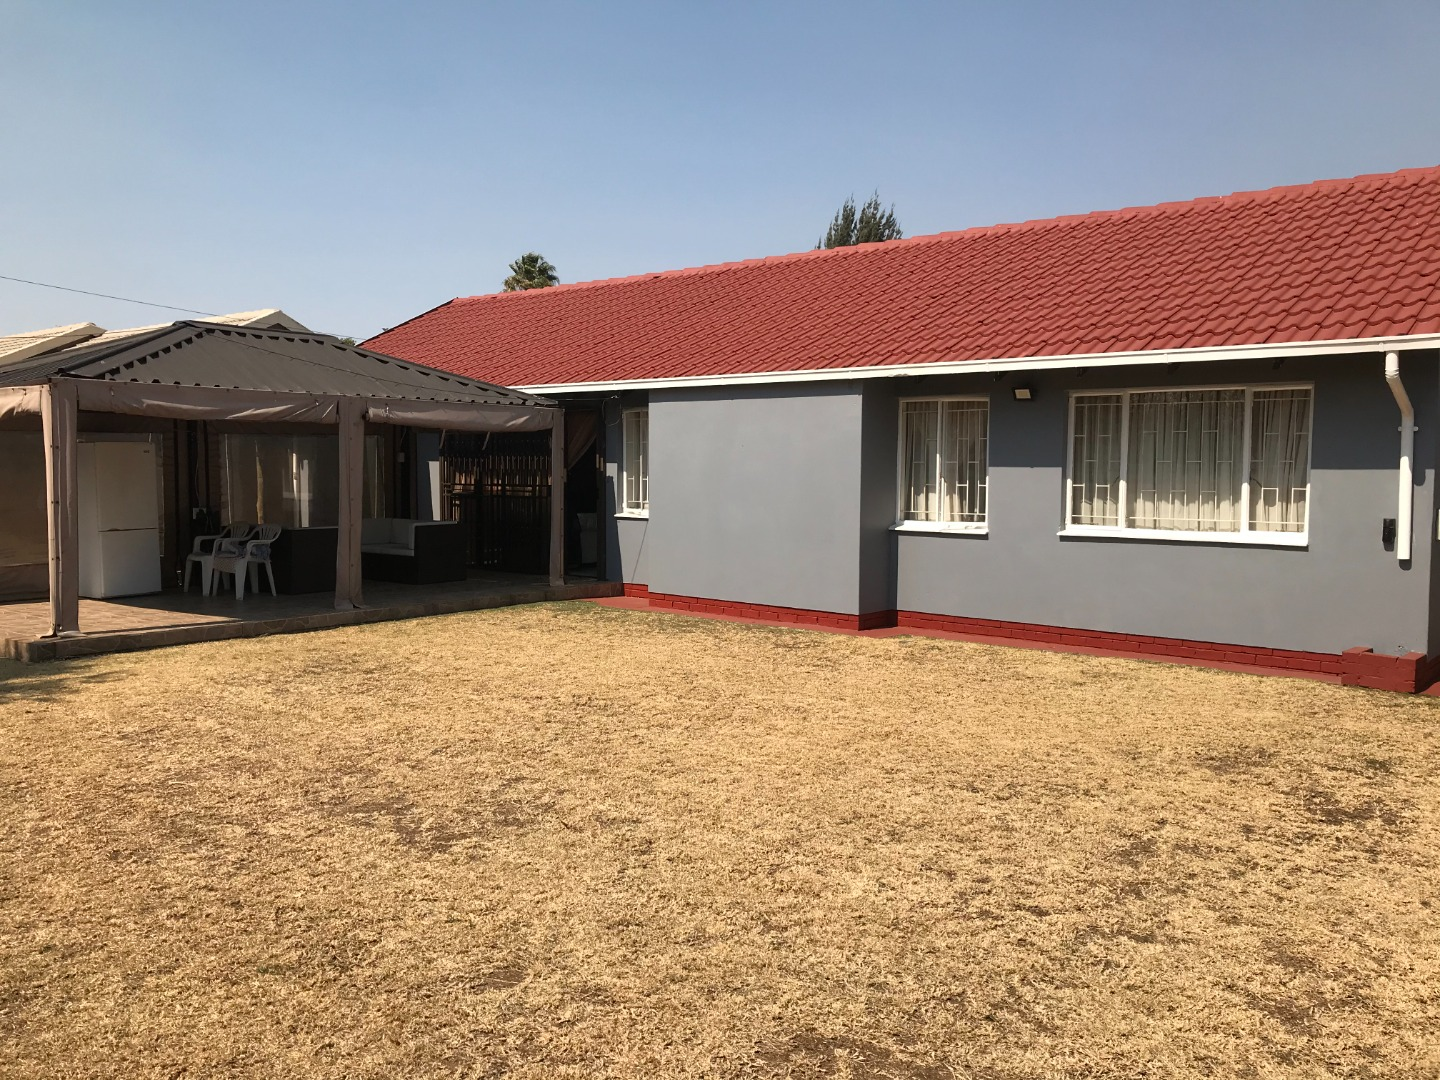 3 Bedroom House For Sale in Huntingdon